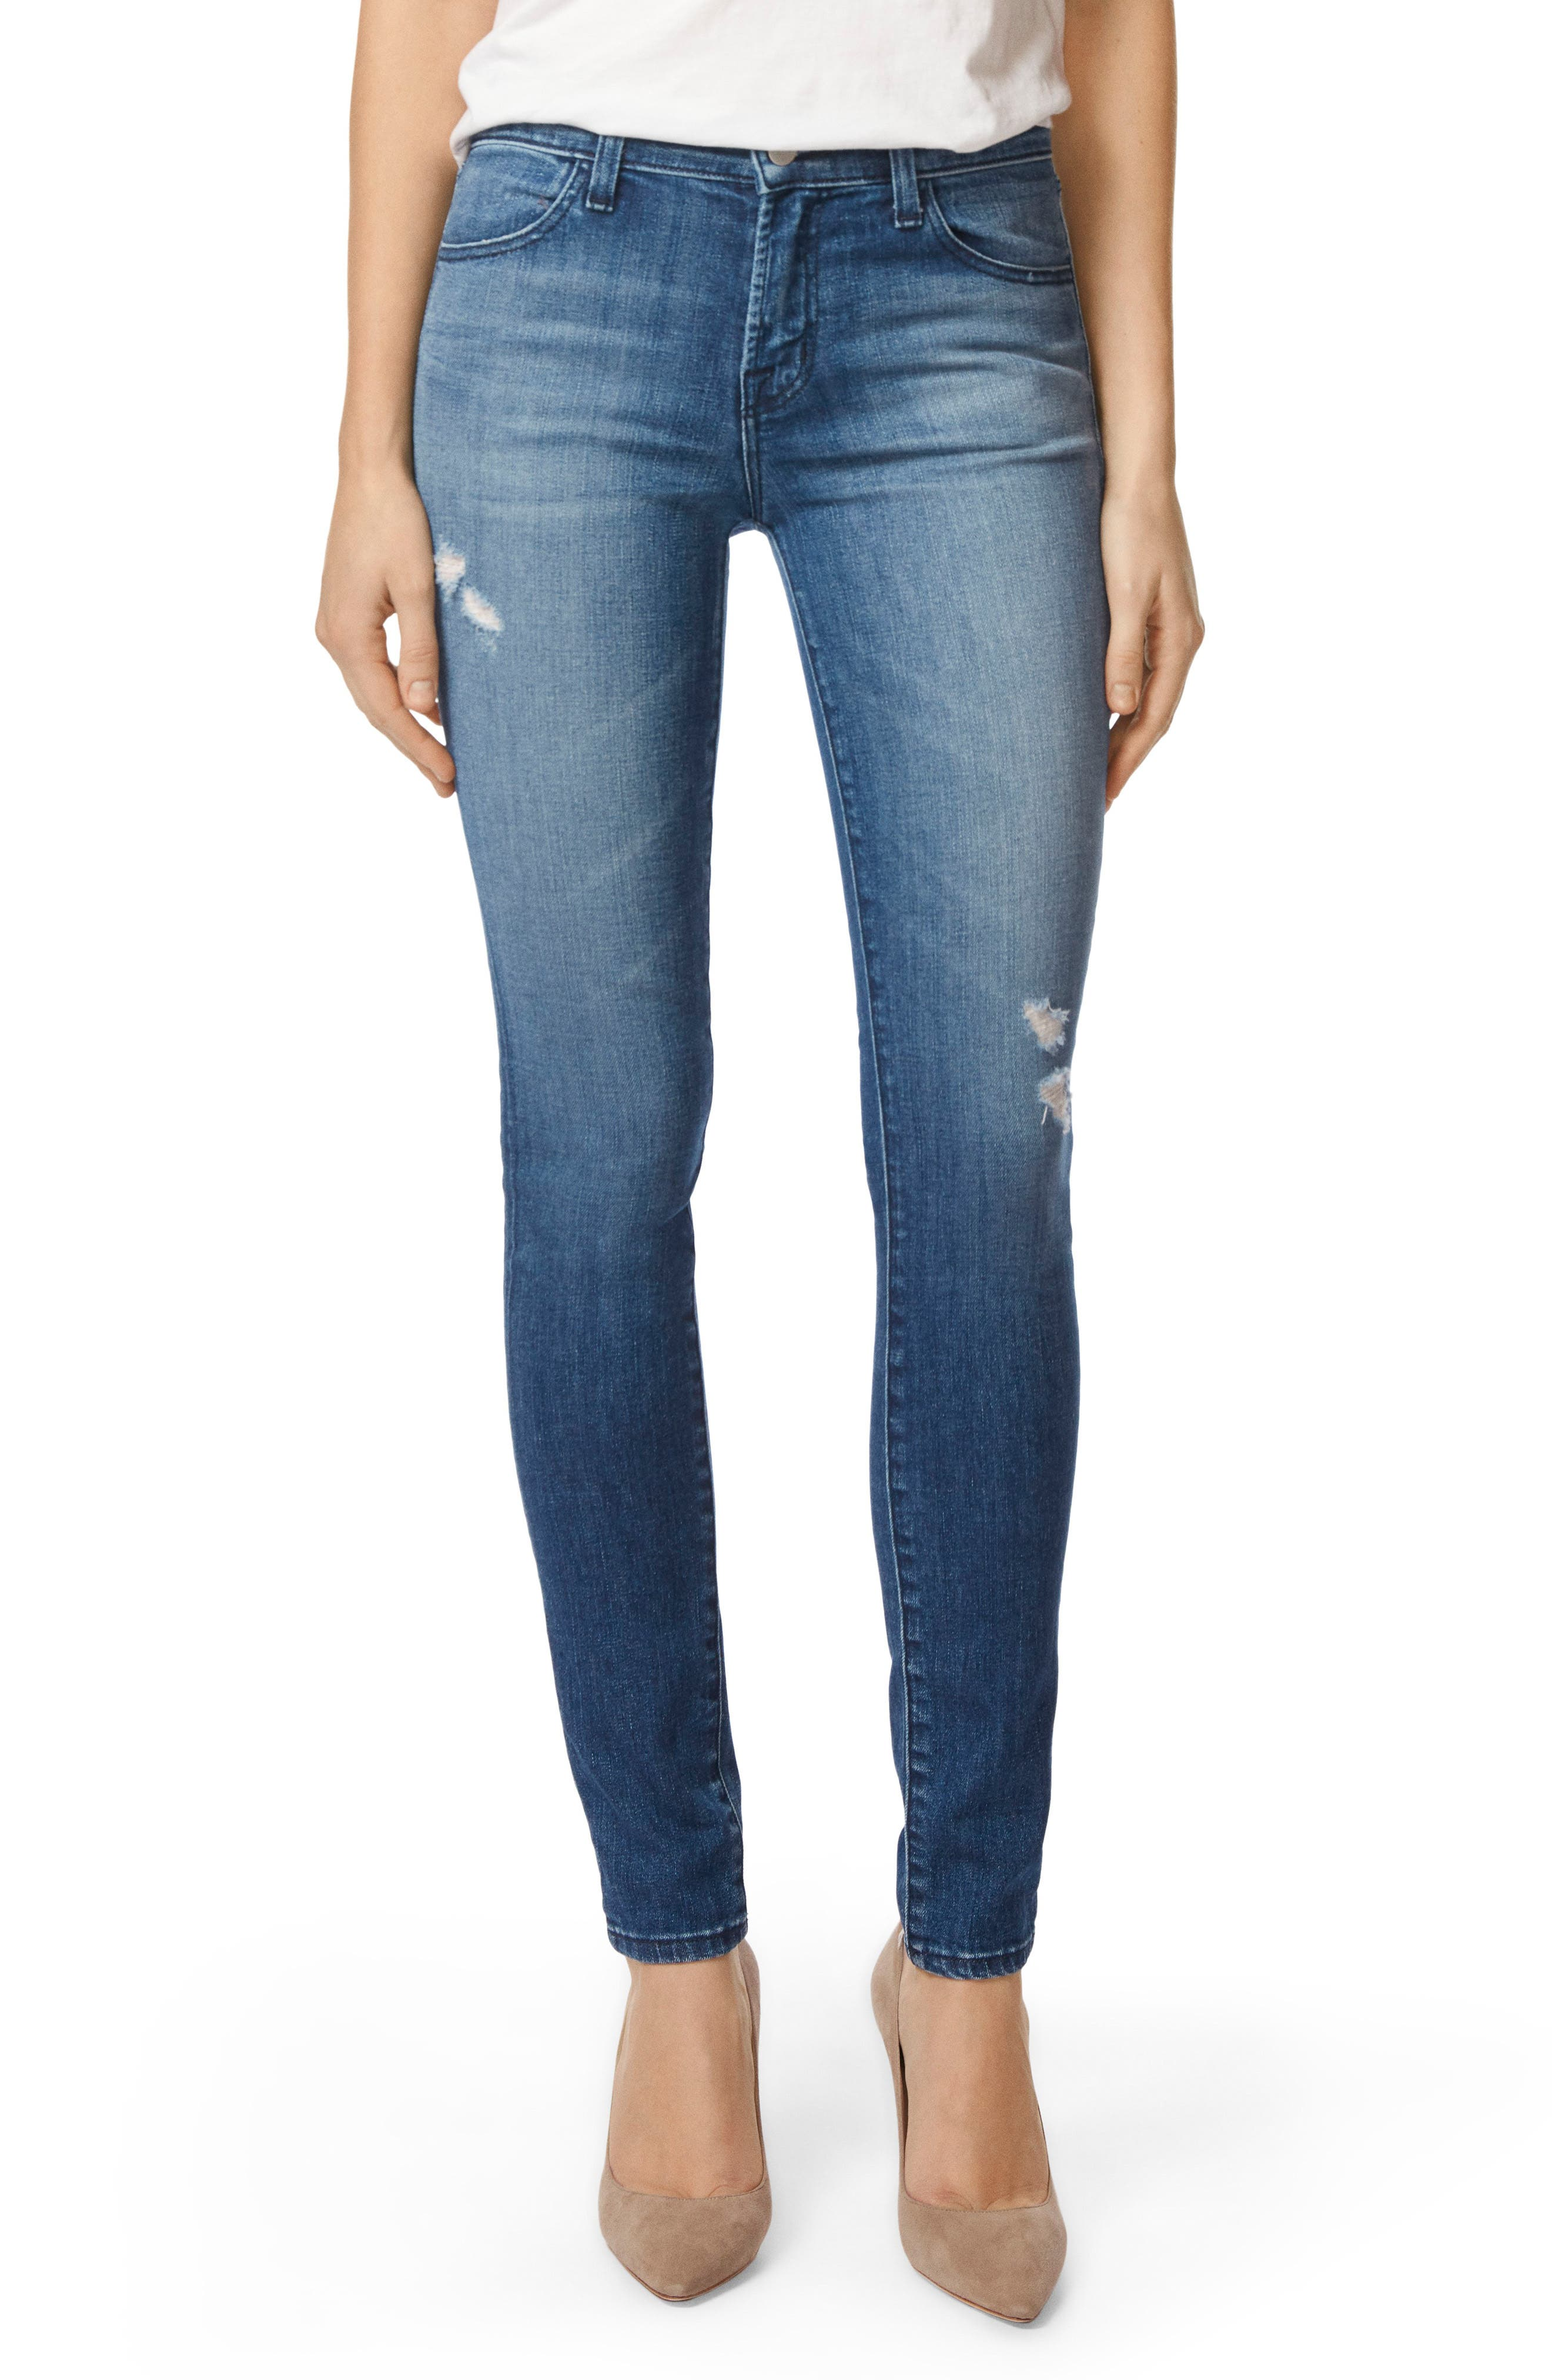 620 Mid Rise Super Skinny Jeans,                         Main,                         color, Mystic